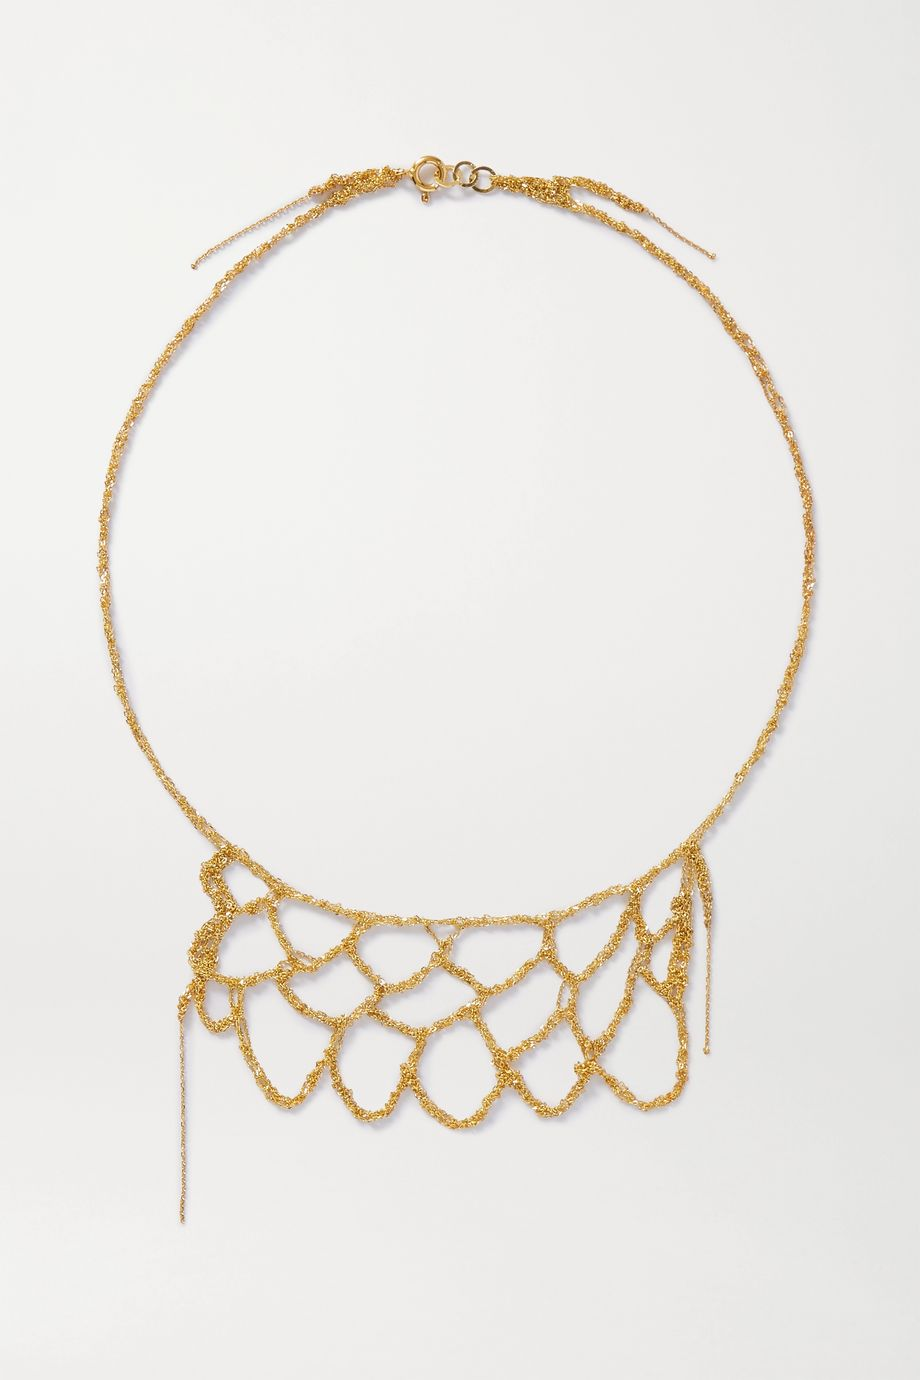 Katia Alpha Gold vermeil necklace